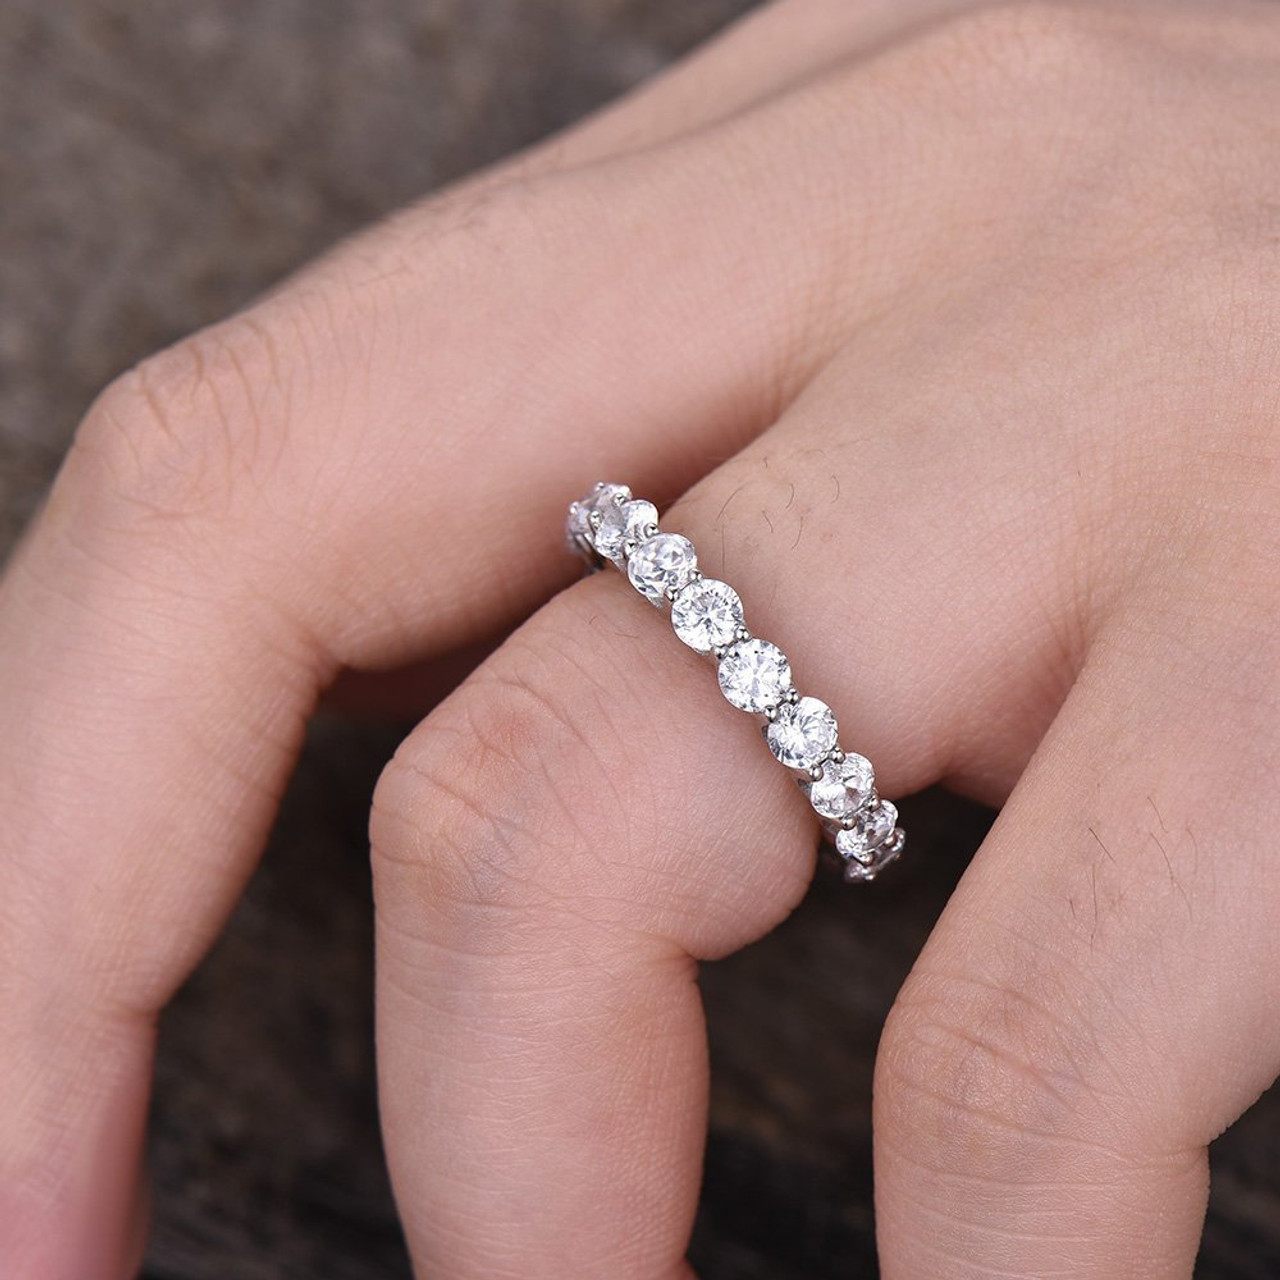 2d2682dbaab1 Forever one moissanite round cut eternity band bbbgem jpg 1000x1000 Stacking  rings anniversary